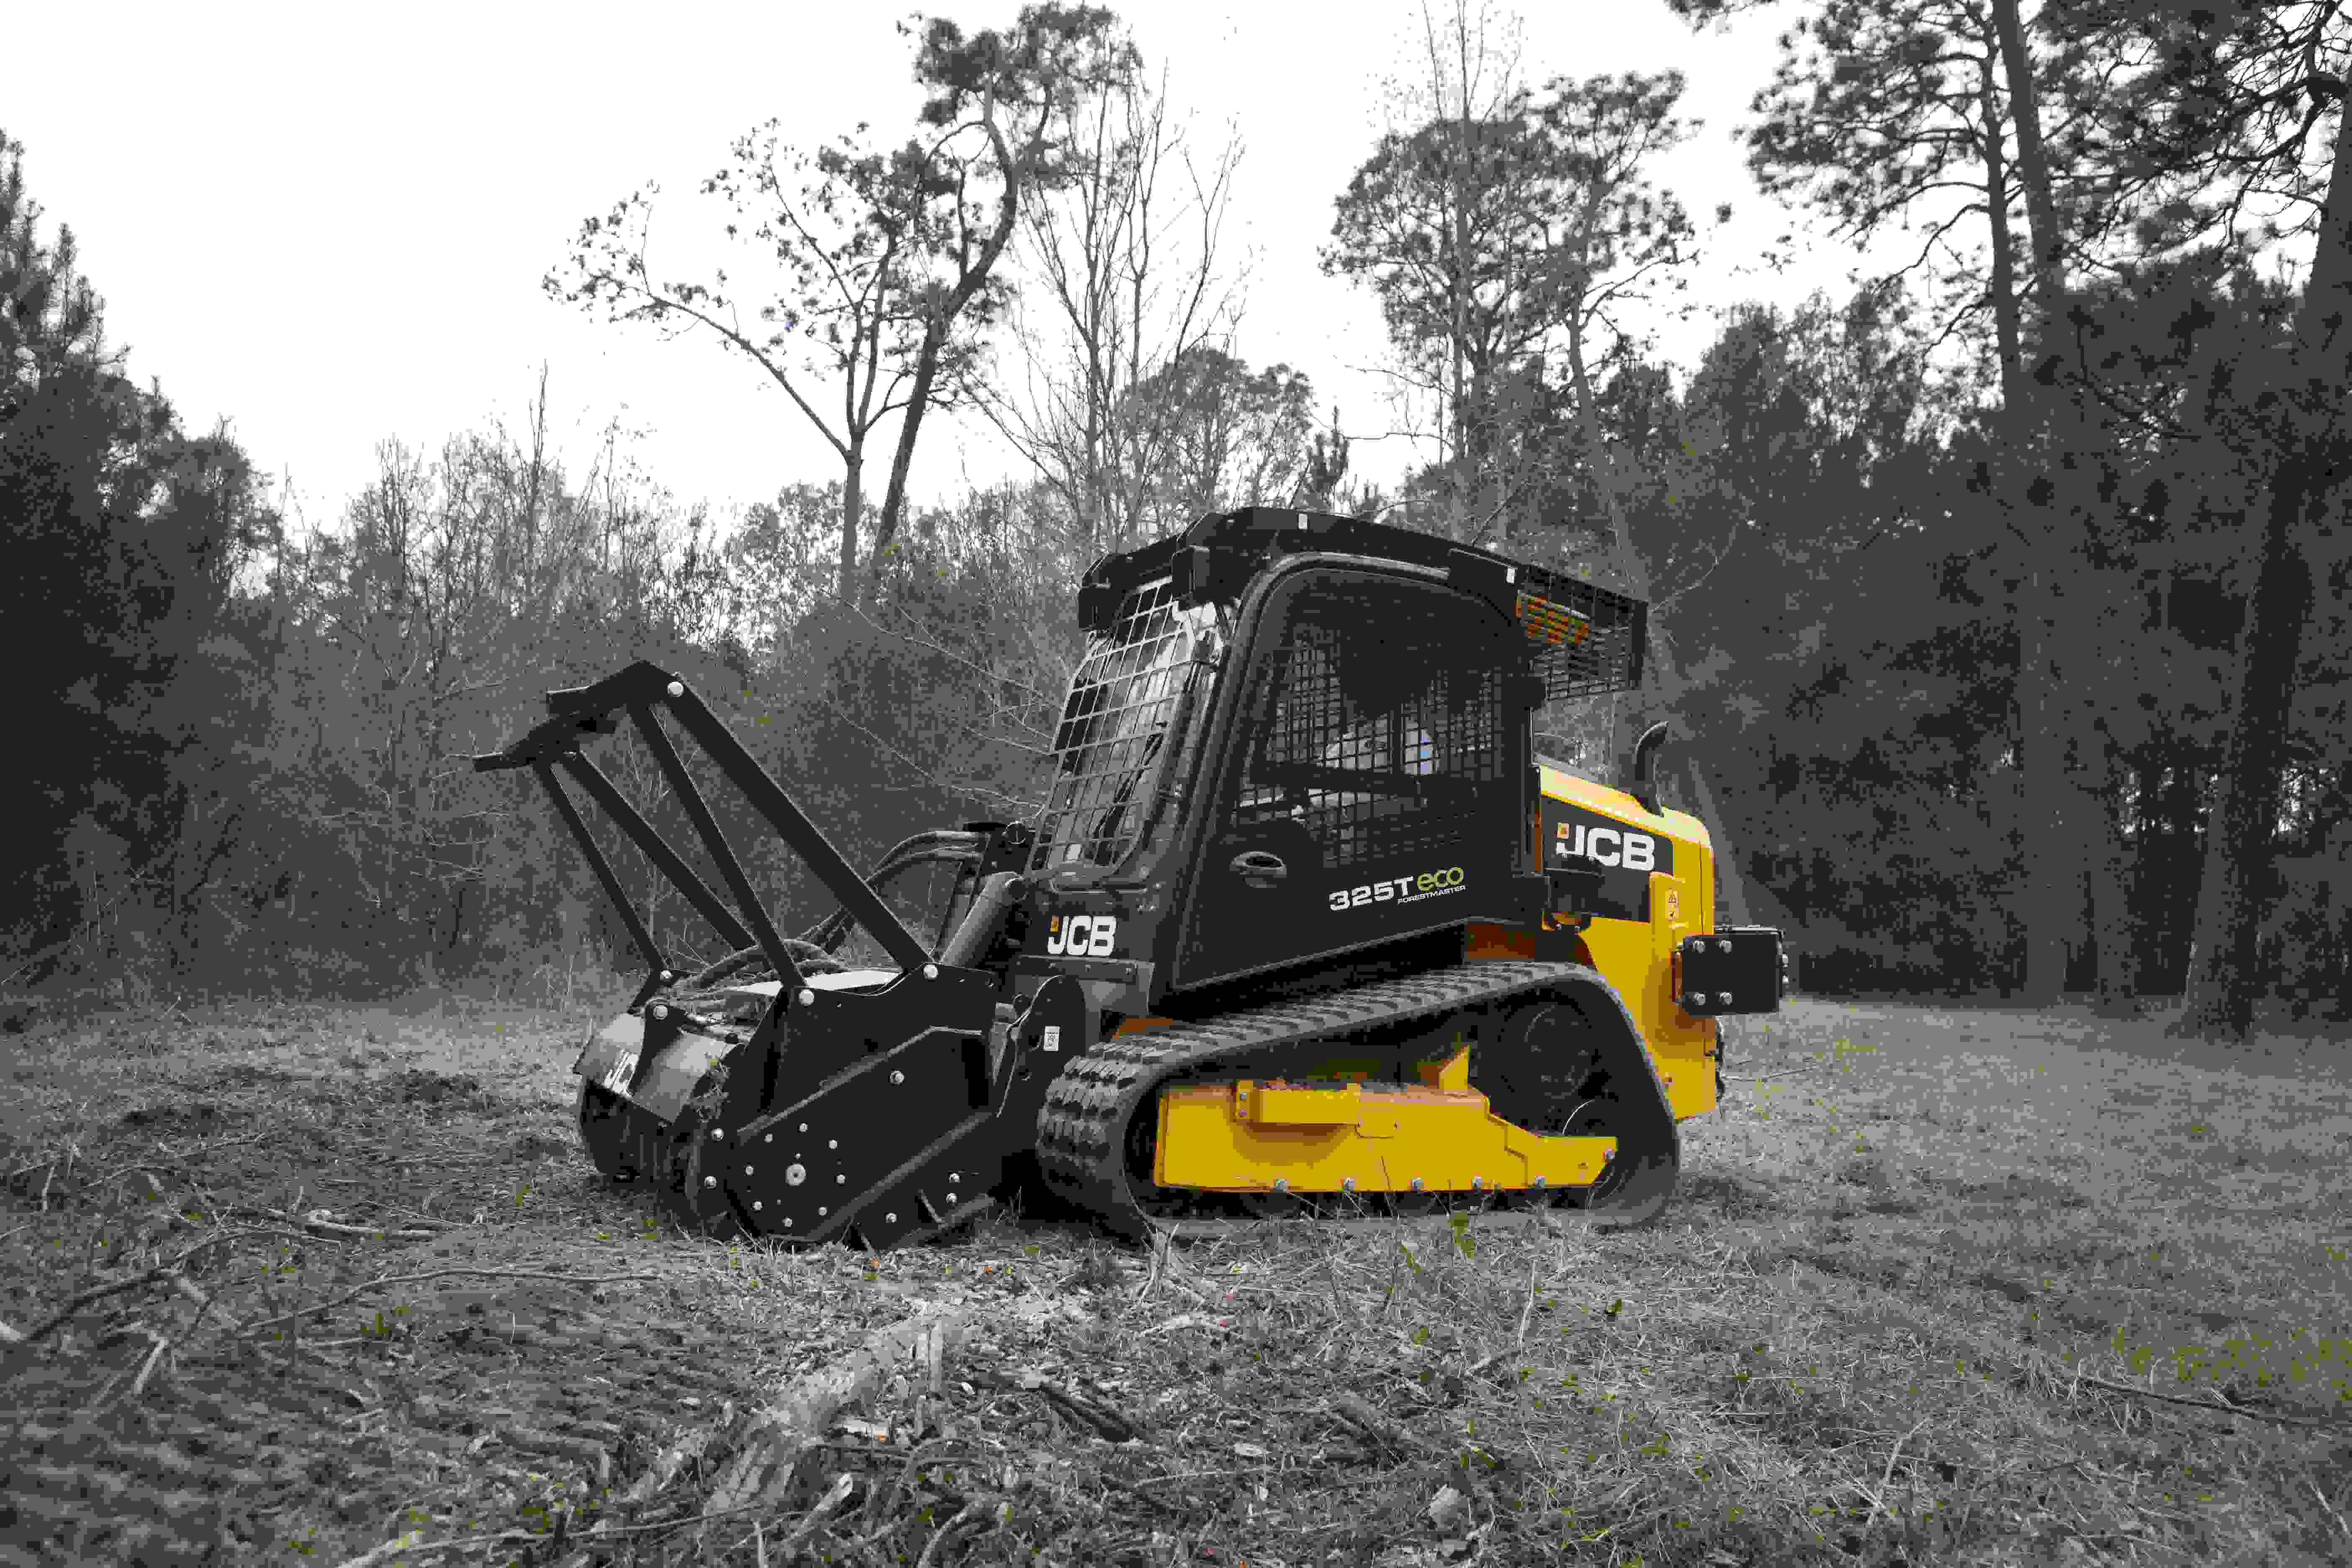 Jcb Reveals Newest Compact Track Loader Forestmaster 325t Eco